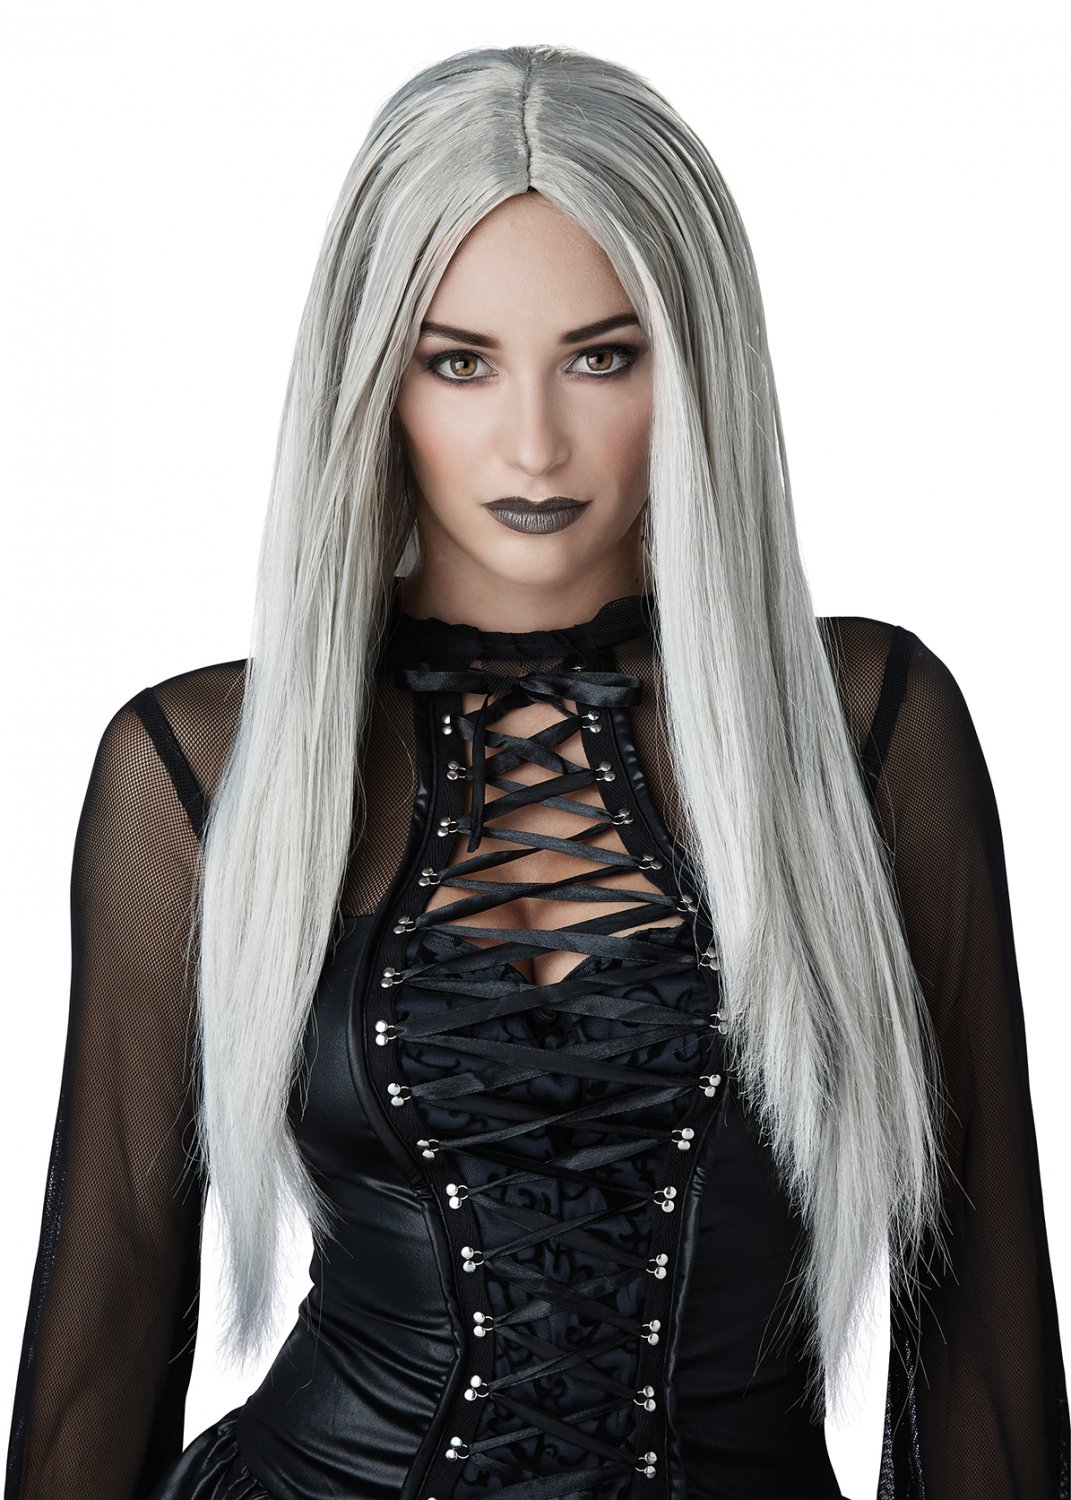 #70879 Sexy Demon Spirit Gothic Matriarch Witch Gray Costume Accessory Wig